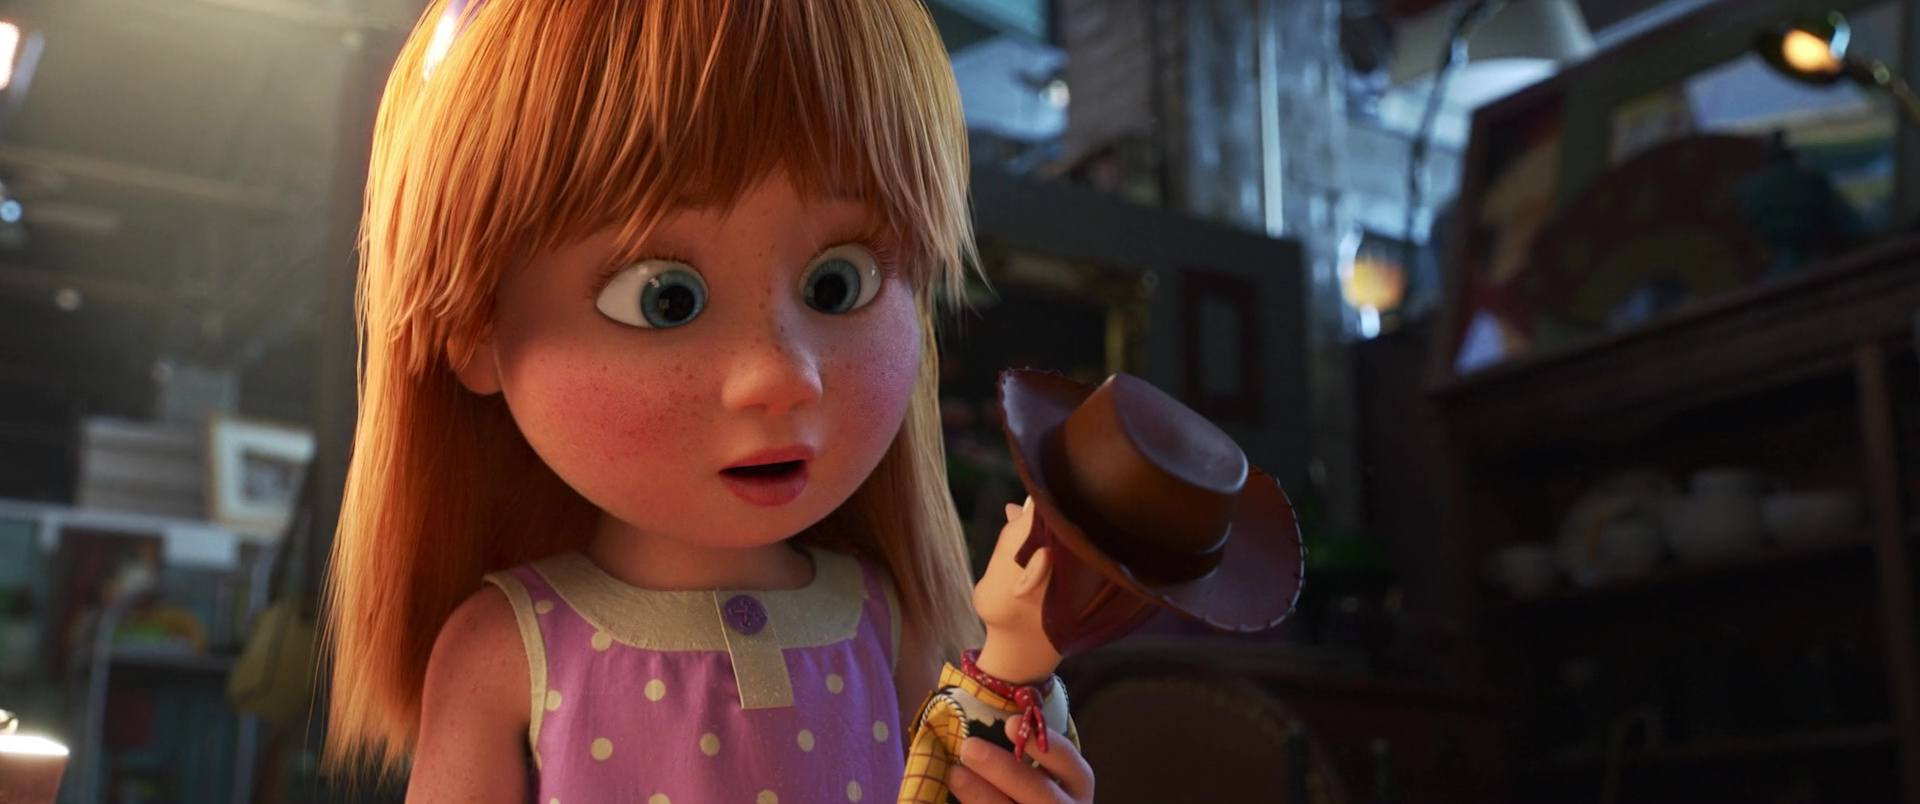 harmony-personnage-toy-story-4-02